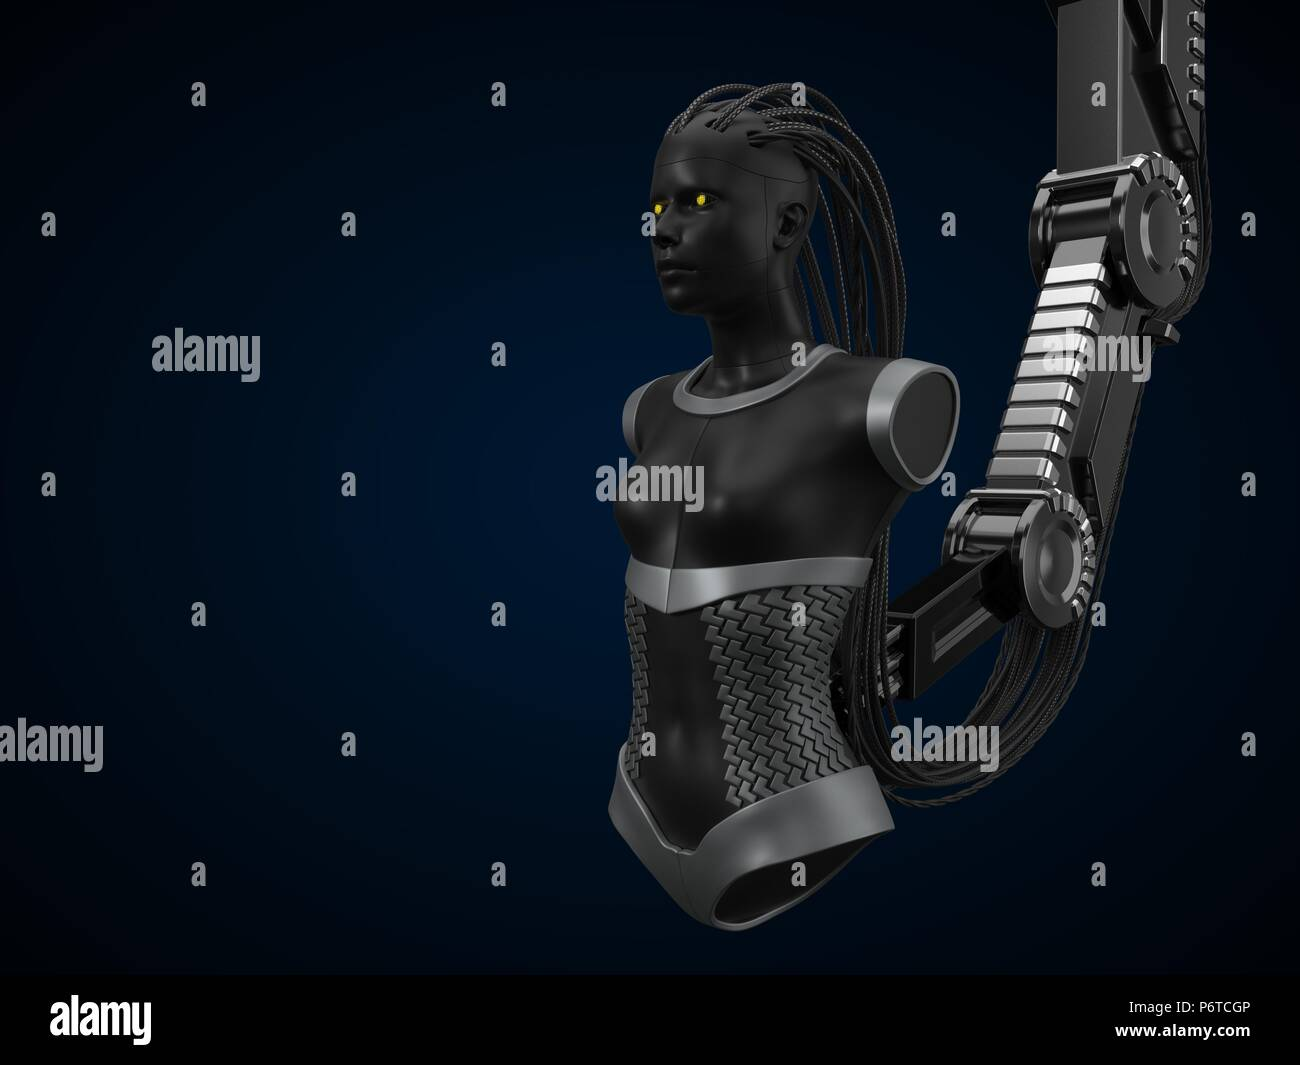 artificial intelligence hub, dark droid version. 3d illustration - Stock Image